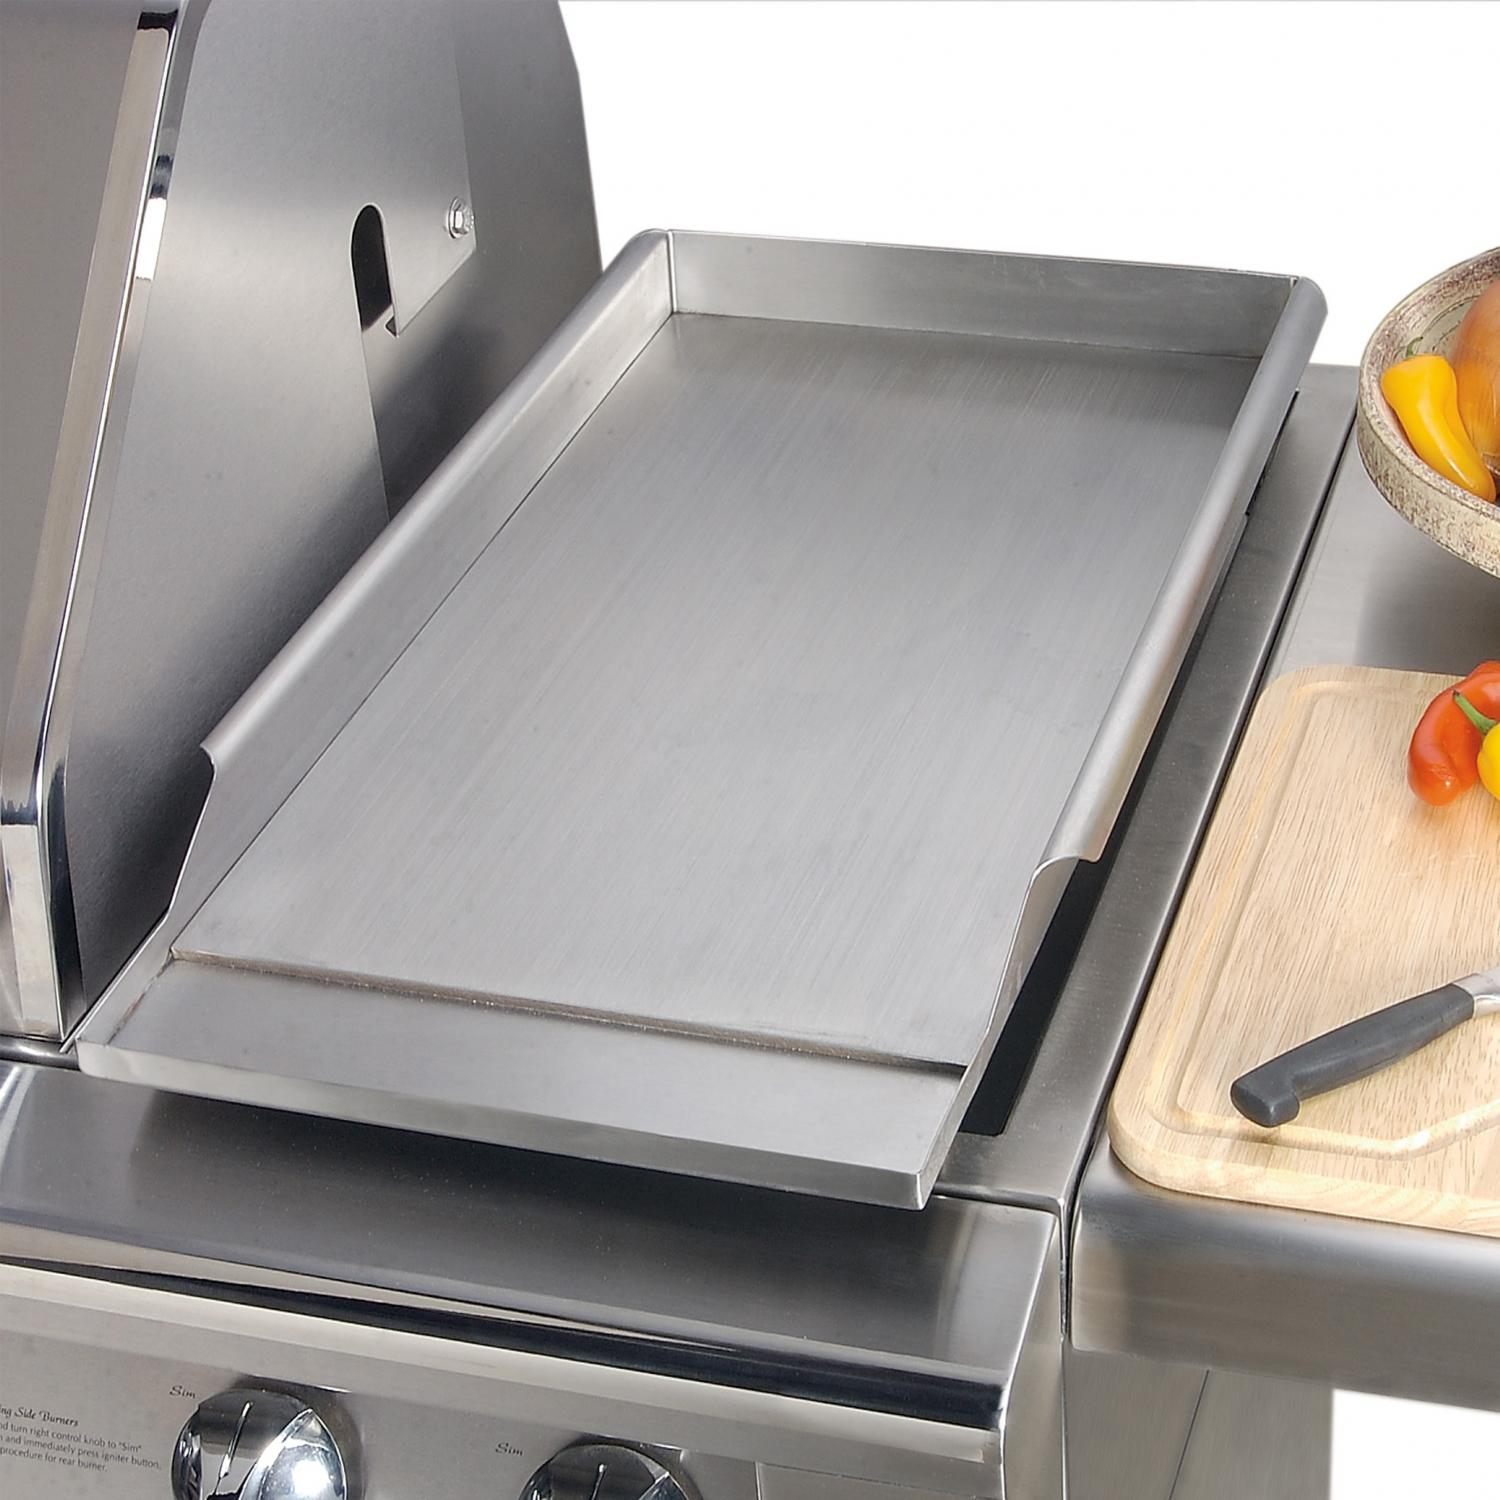 Picture of Alfresco Griddle For Alfresco Side Burners